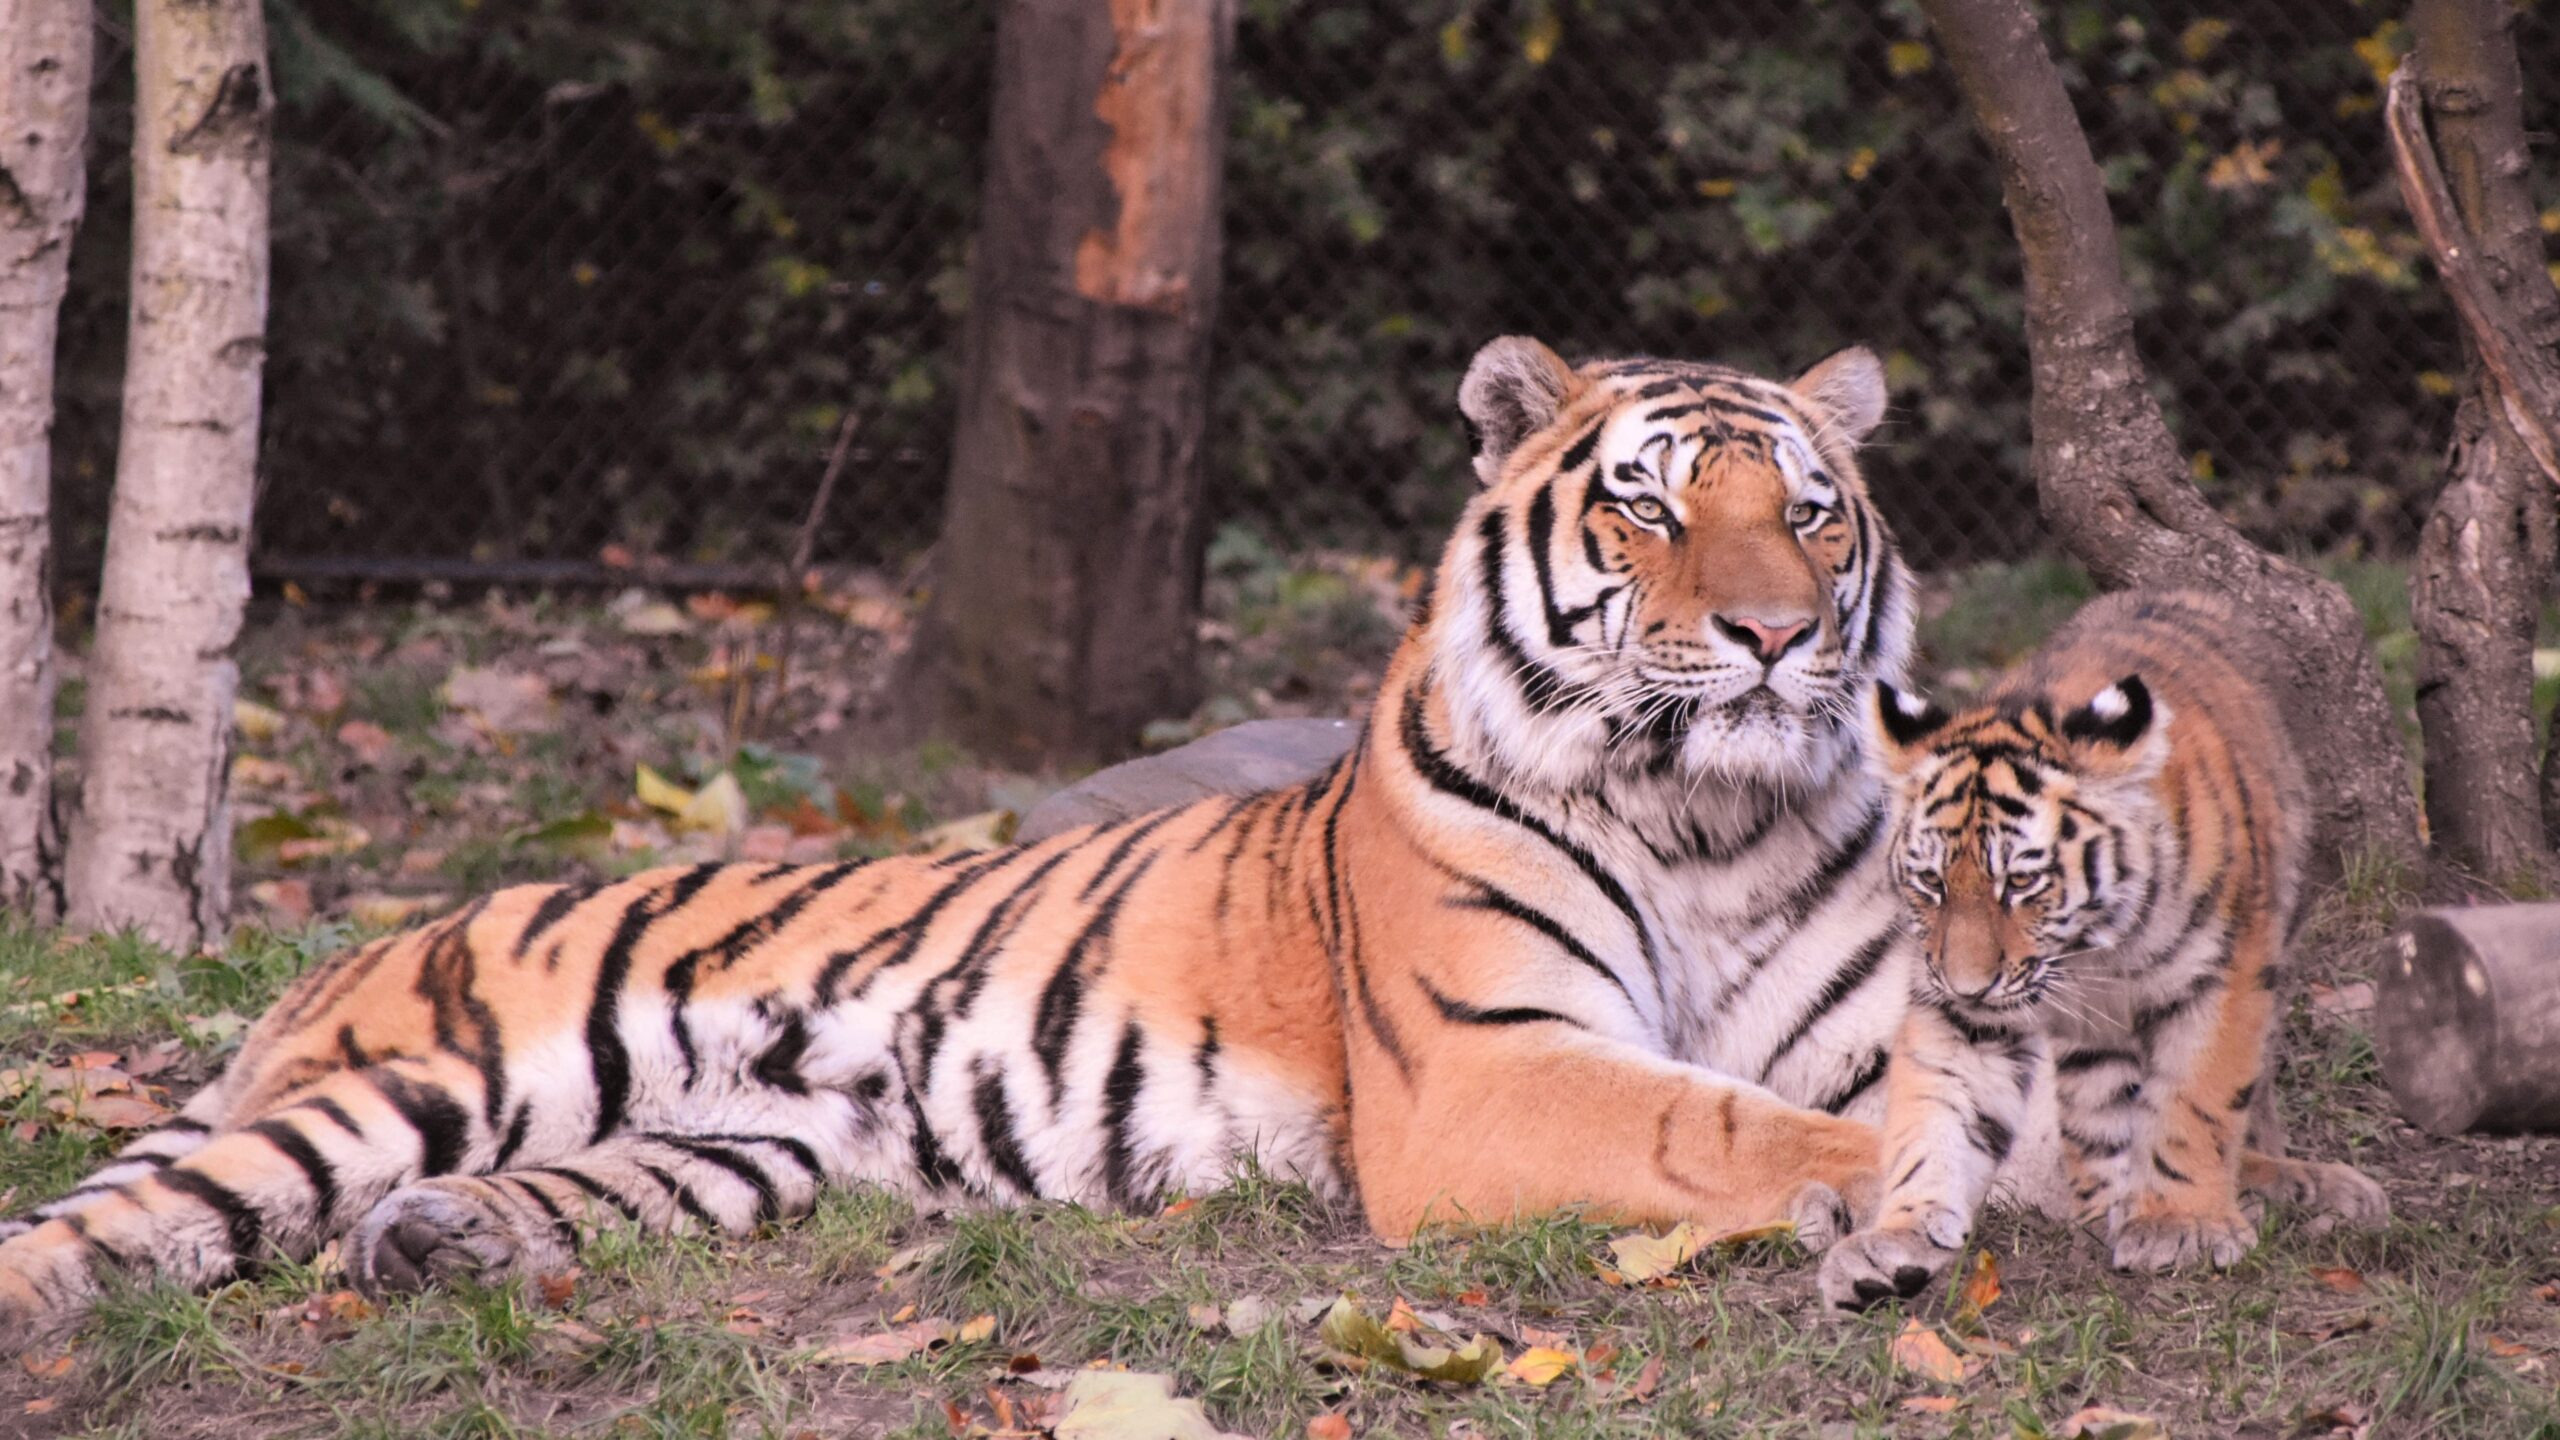 India Sees 30% Drop in Tiger Deaths in 5 Years